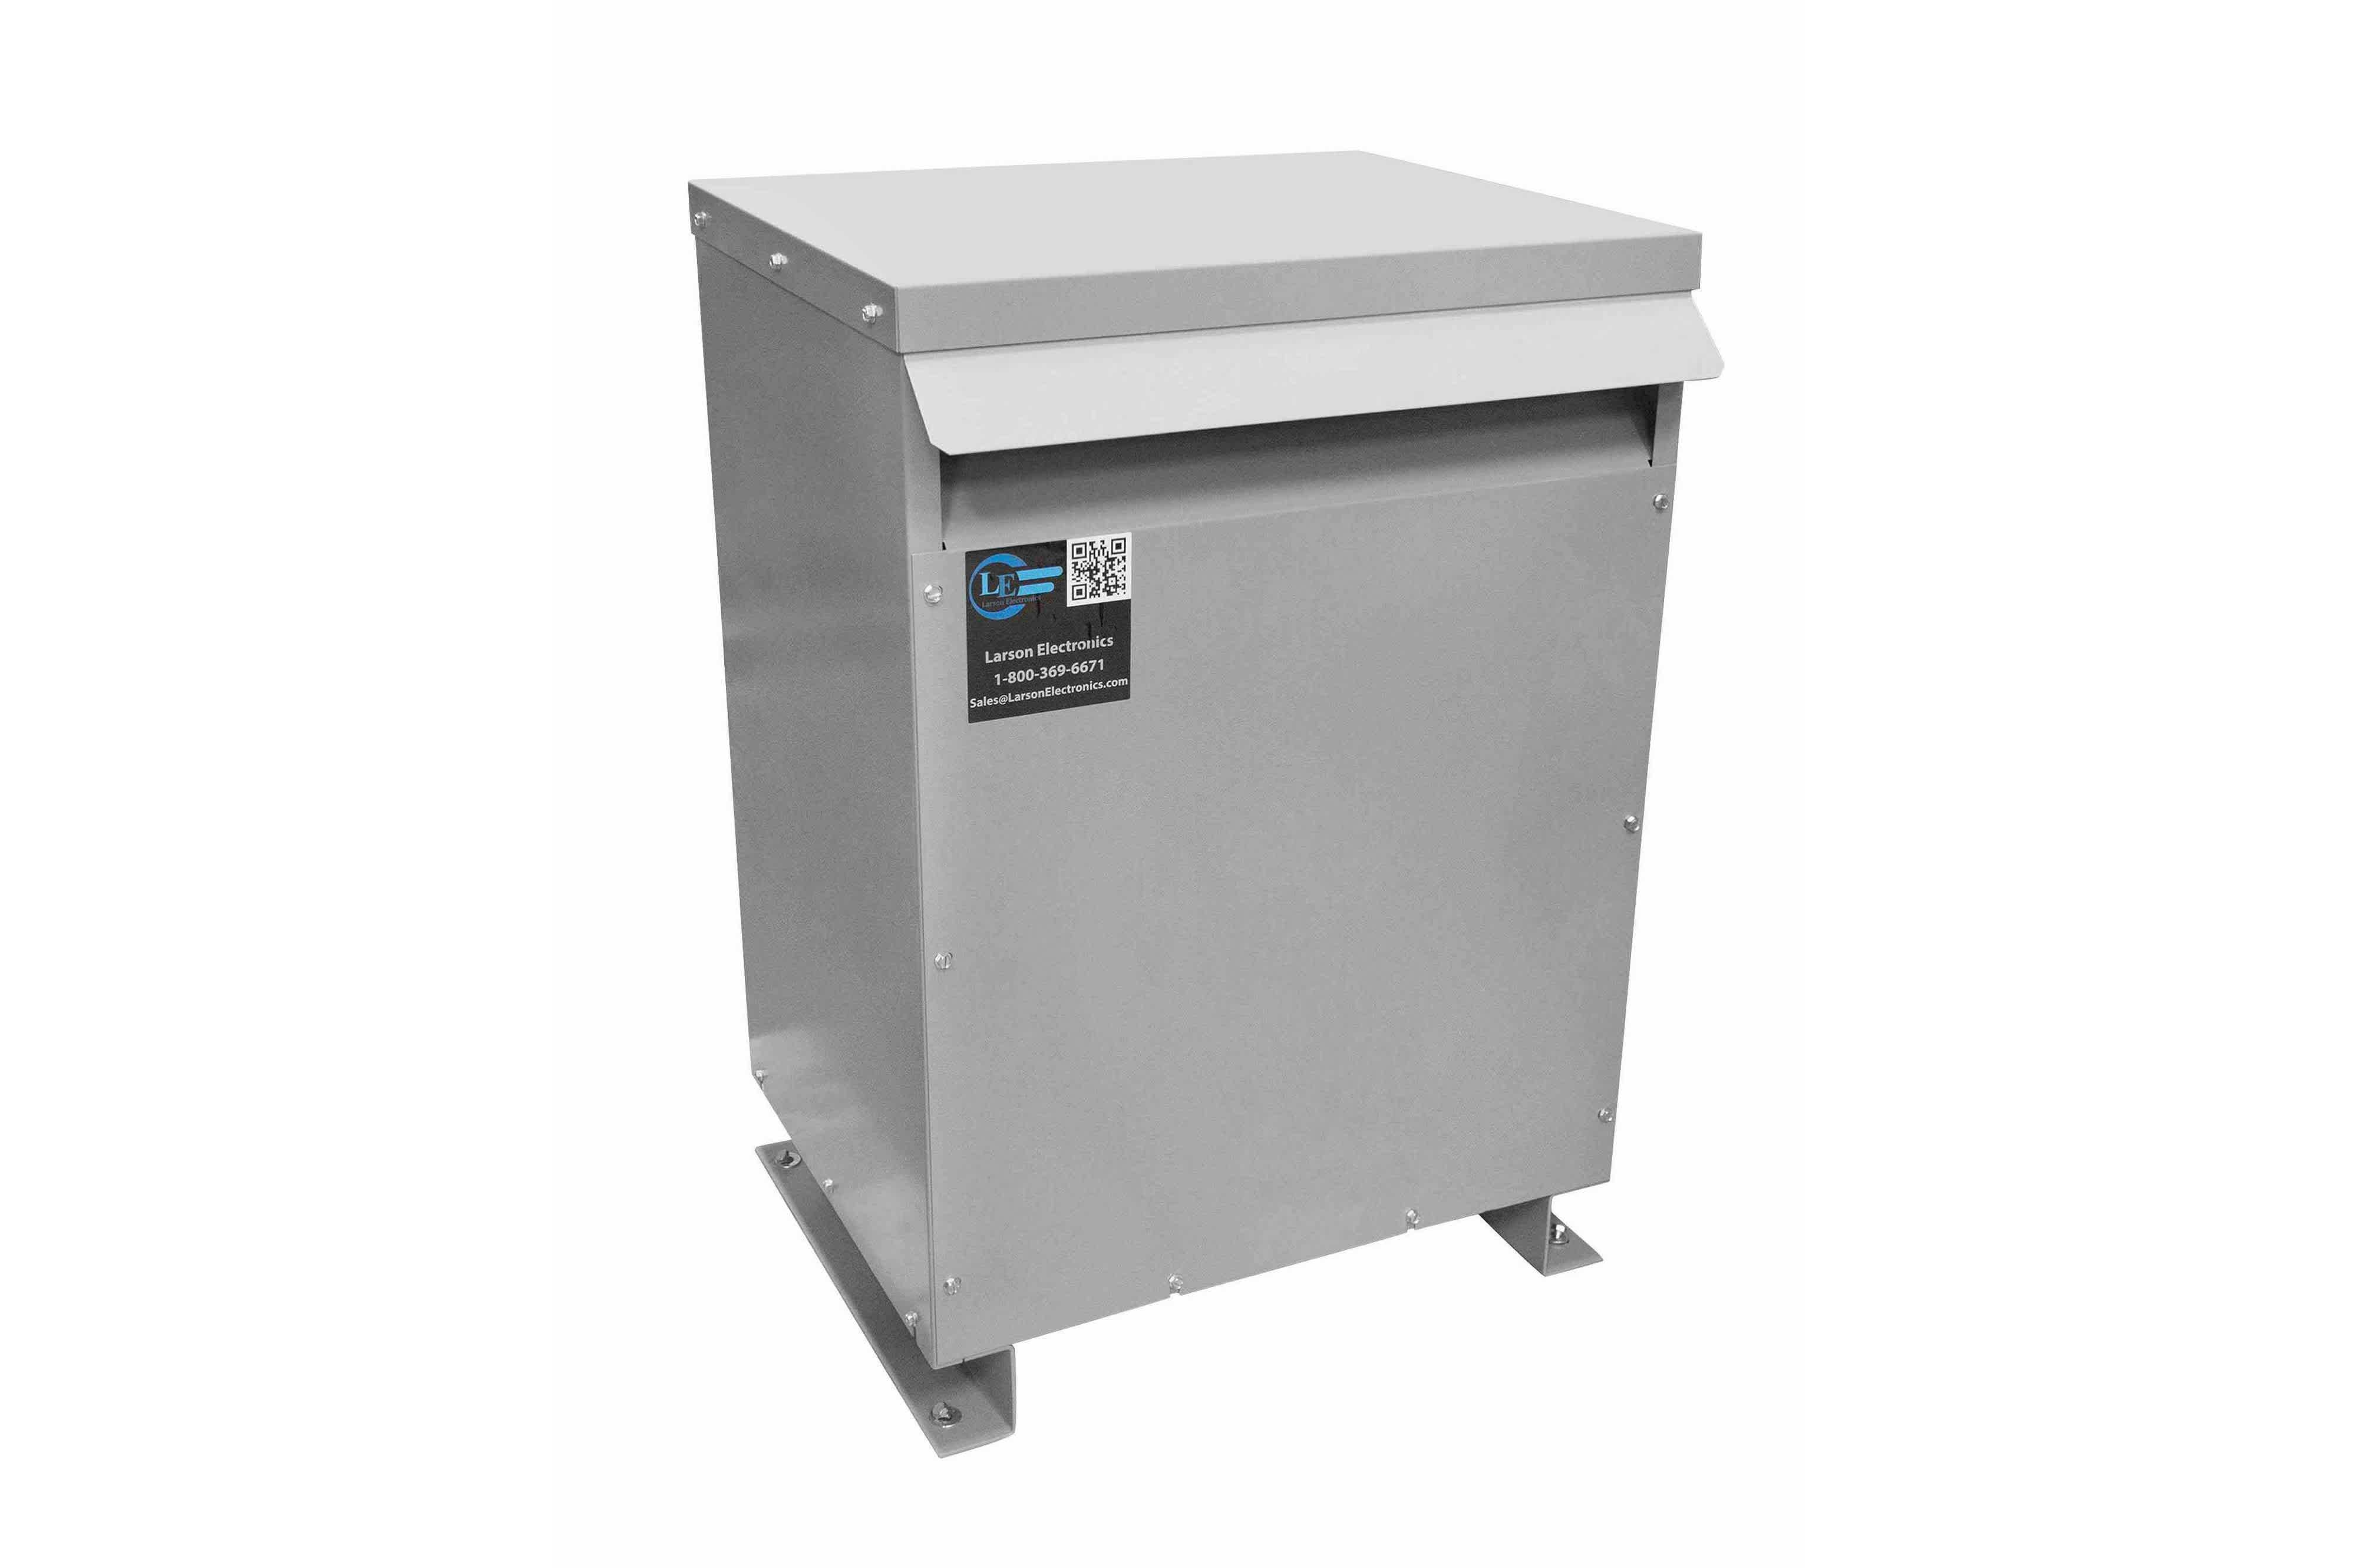 36 kVA 3PH Isolation Transformer, 460V Delta Primary, 240 Delta Secondary, N3R, Ventilated, 60 Hz